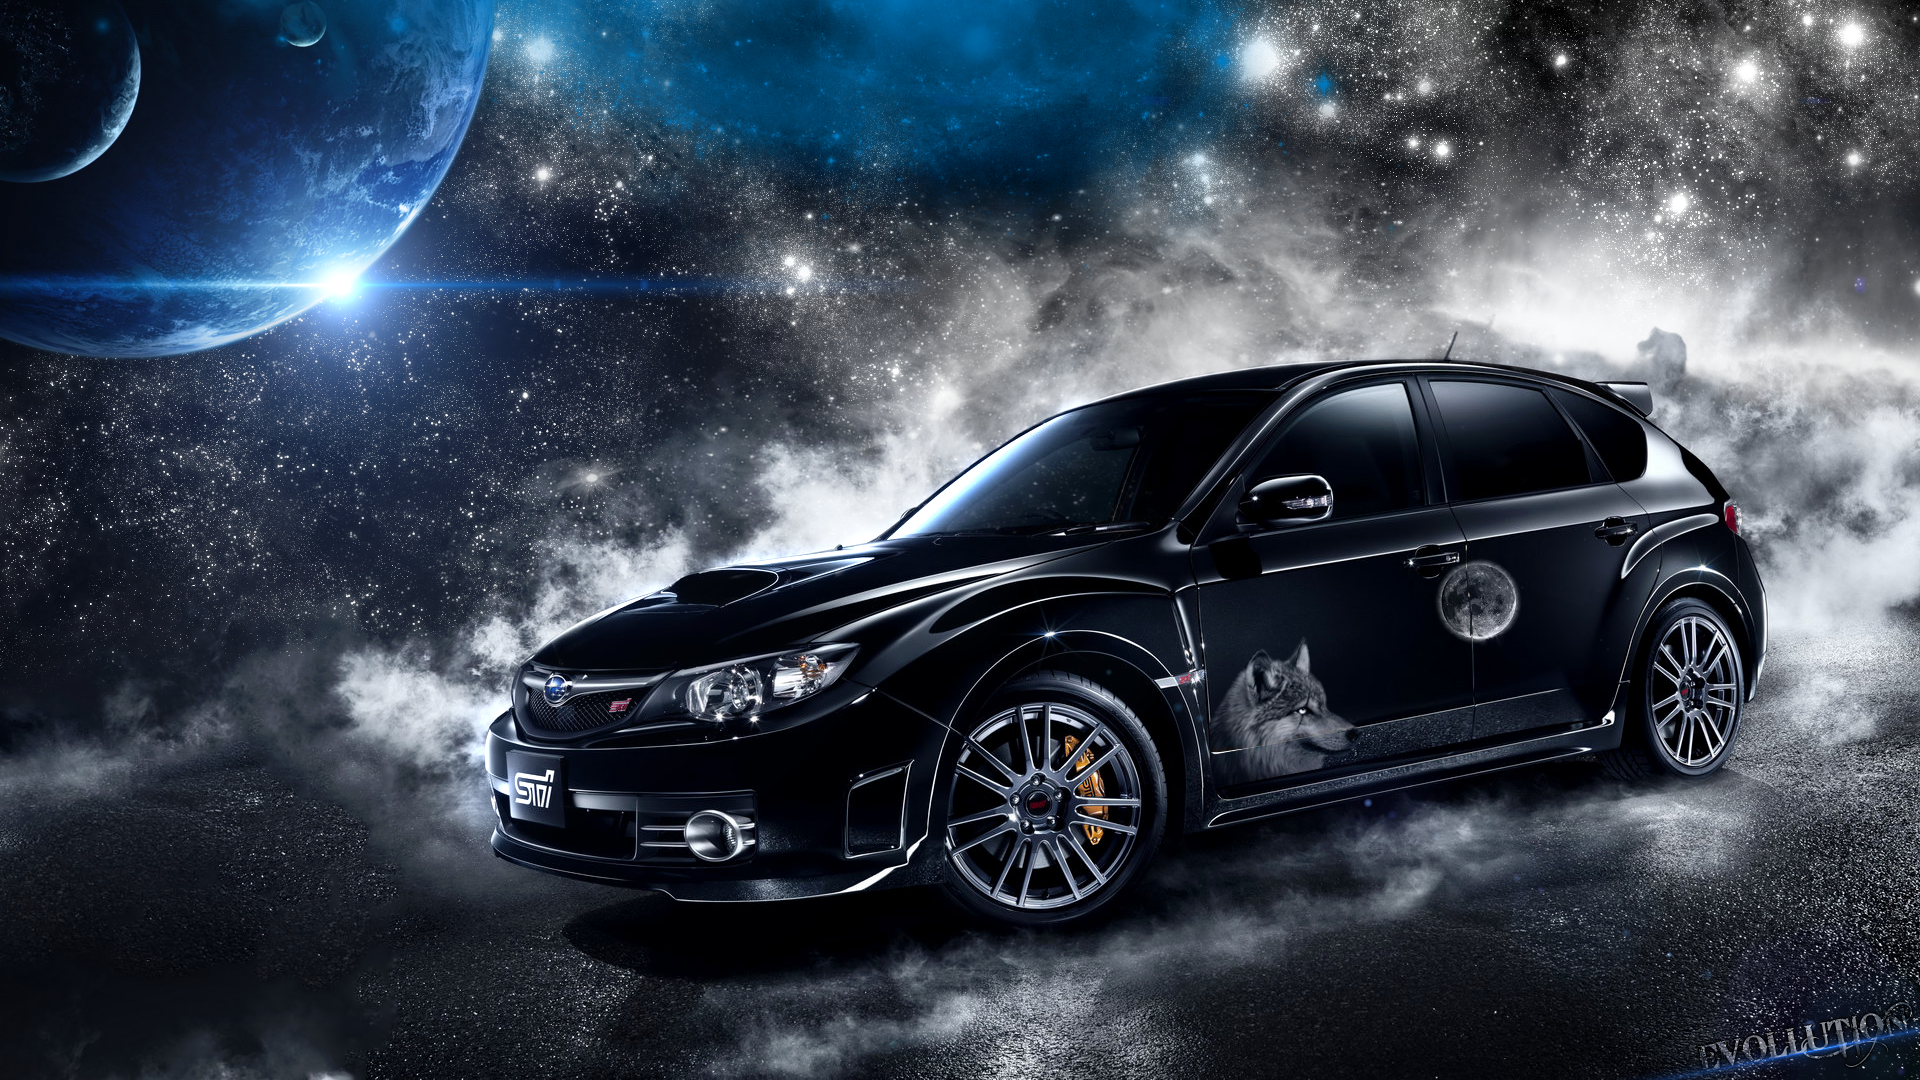 Subaru Wallpapers 1080p - Subaru HD PNG